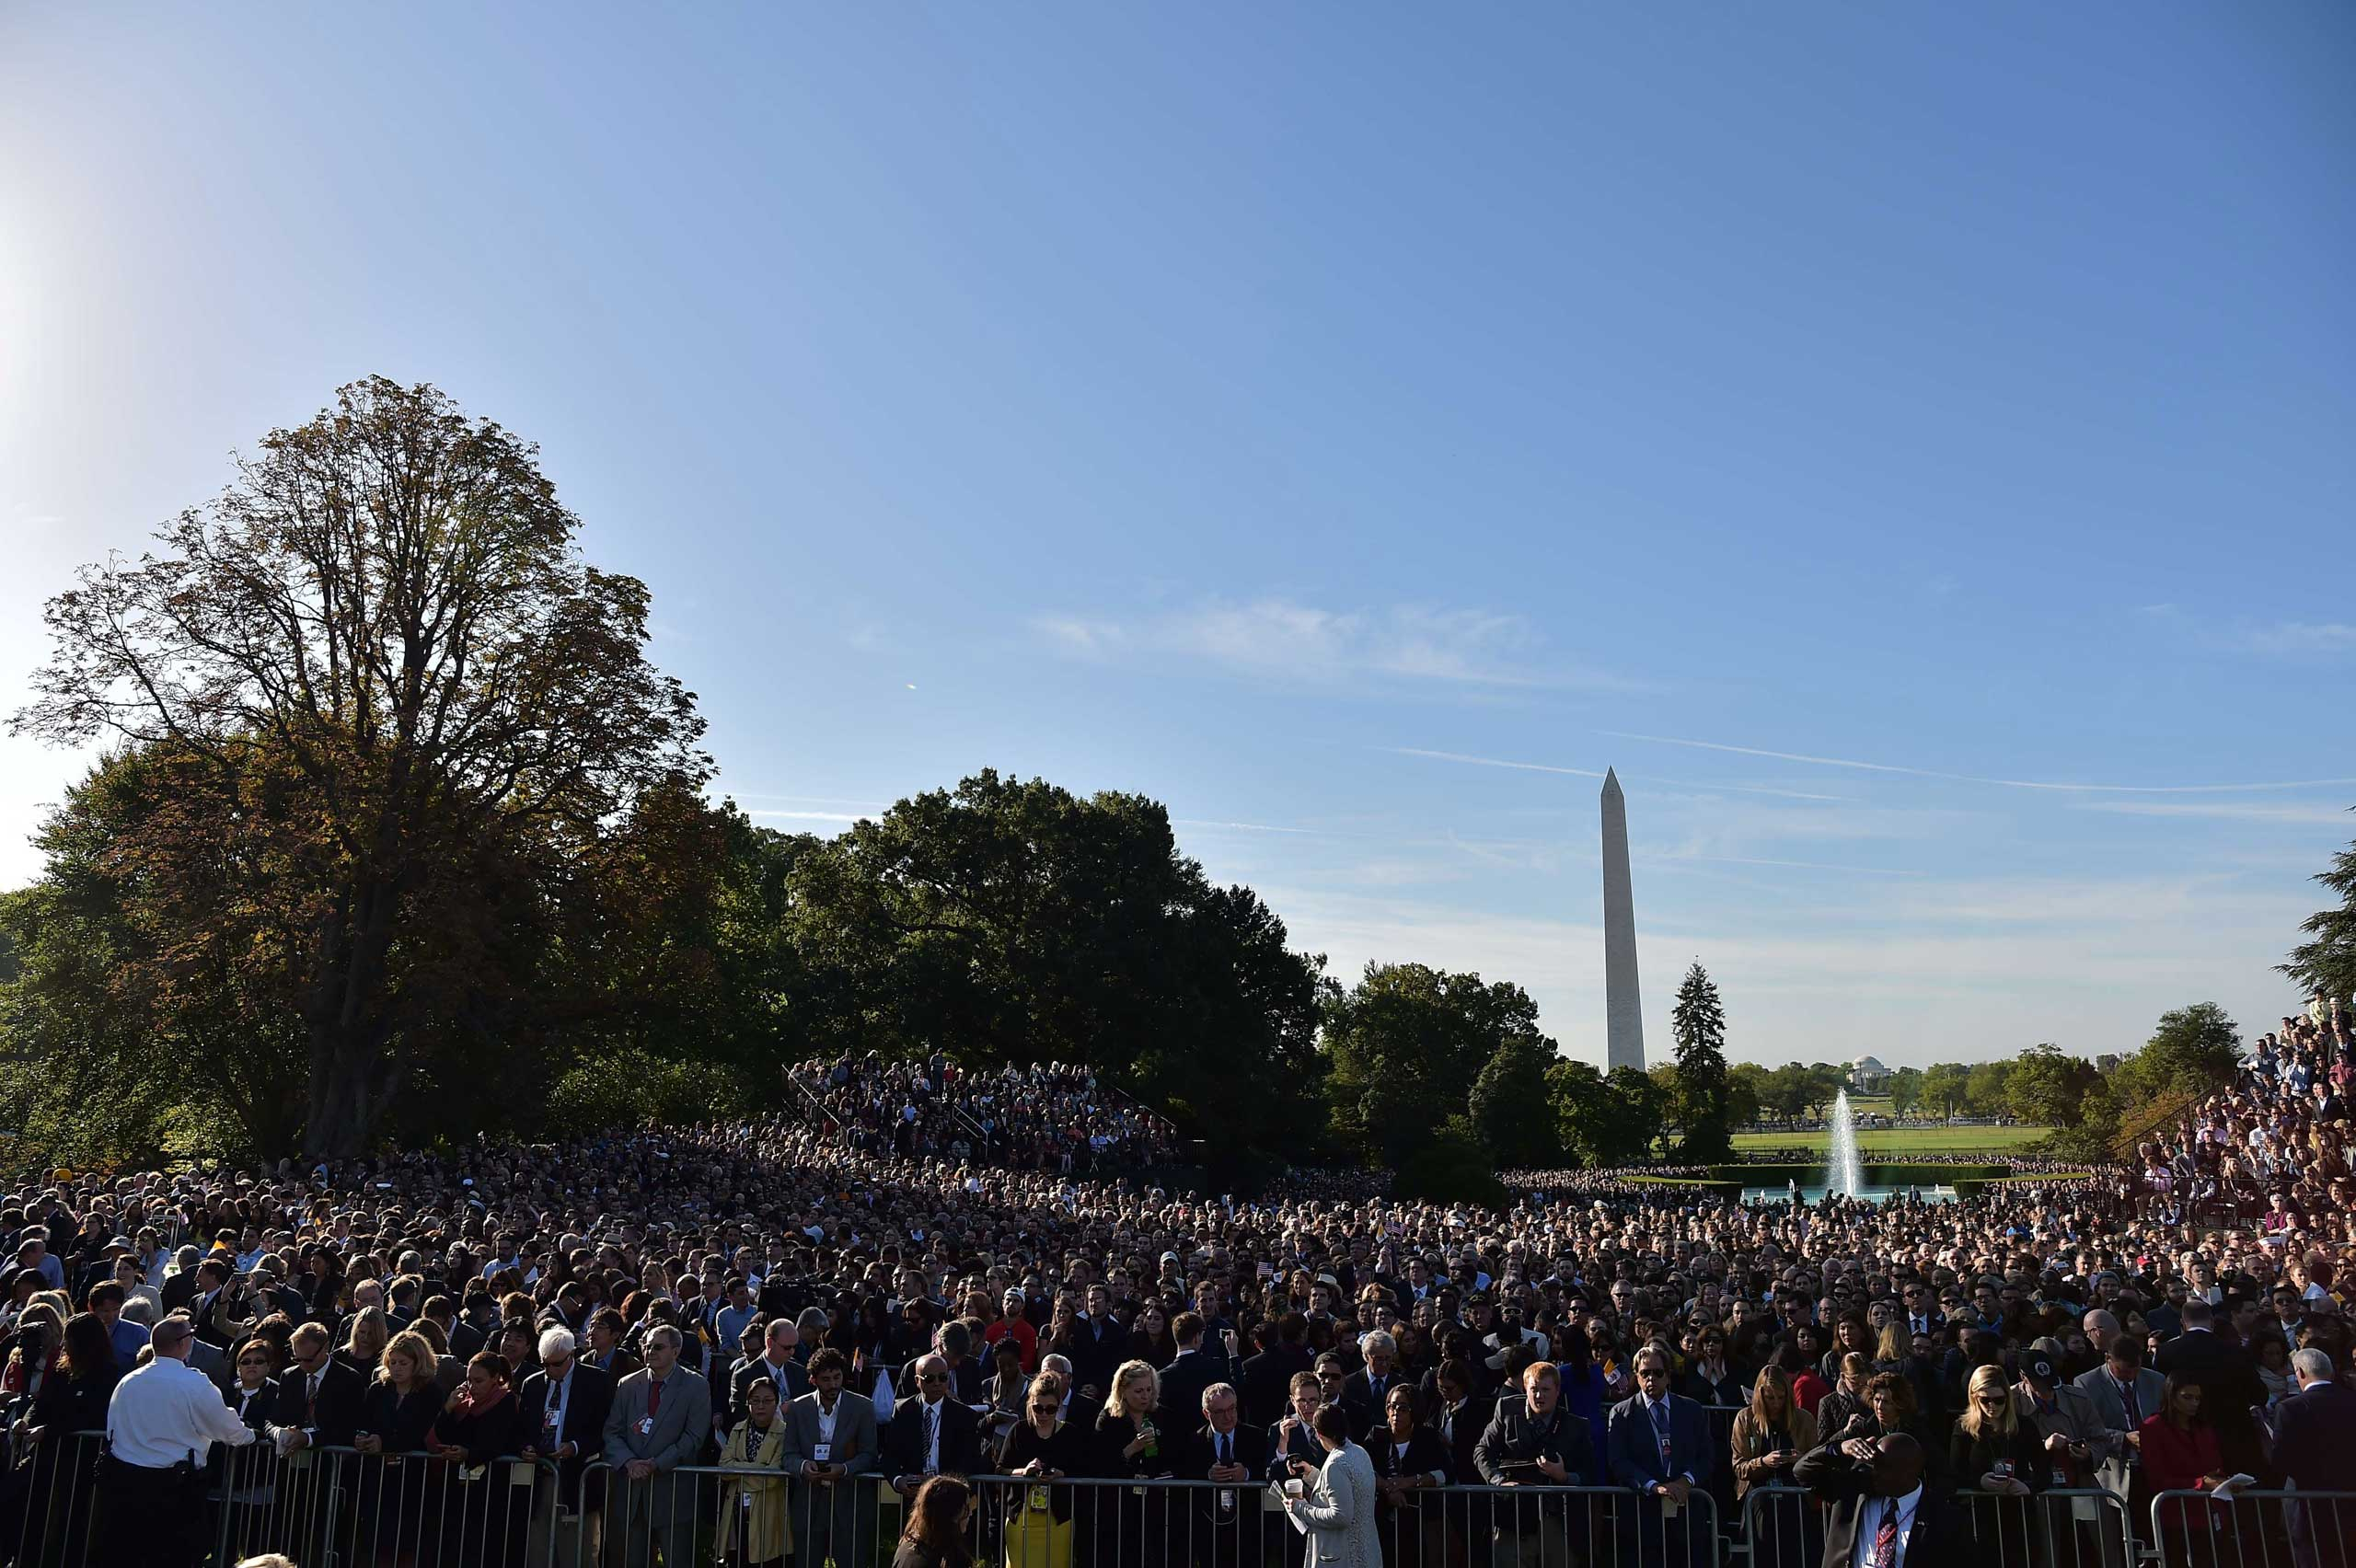 People wait for the arrival of Pope Francis at the White House in Washington, on Sept. 23, 2015.